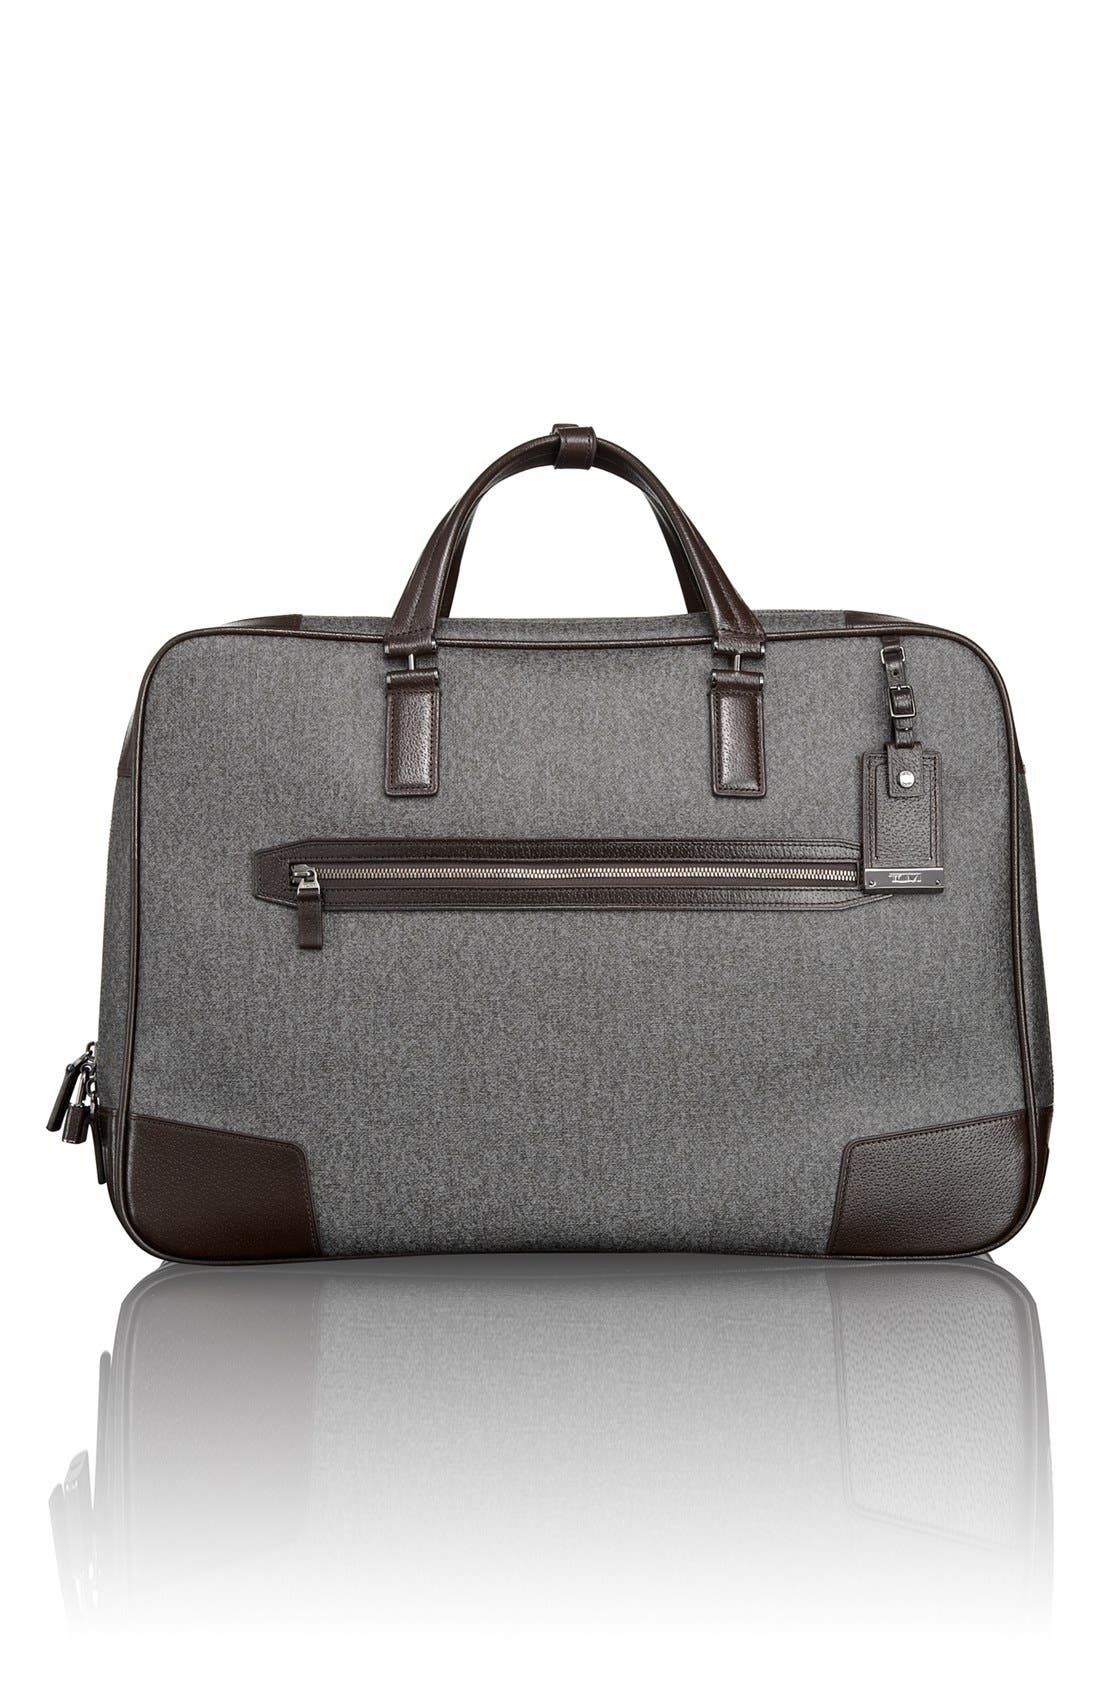 Alternate Image 1 Selected - Tumi 'Astor - Trinity' Softside Carry-On Bag (20 Inch)